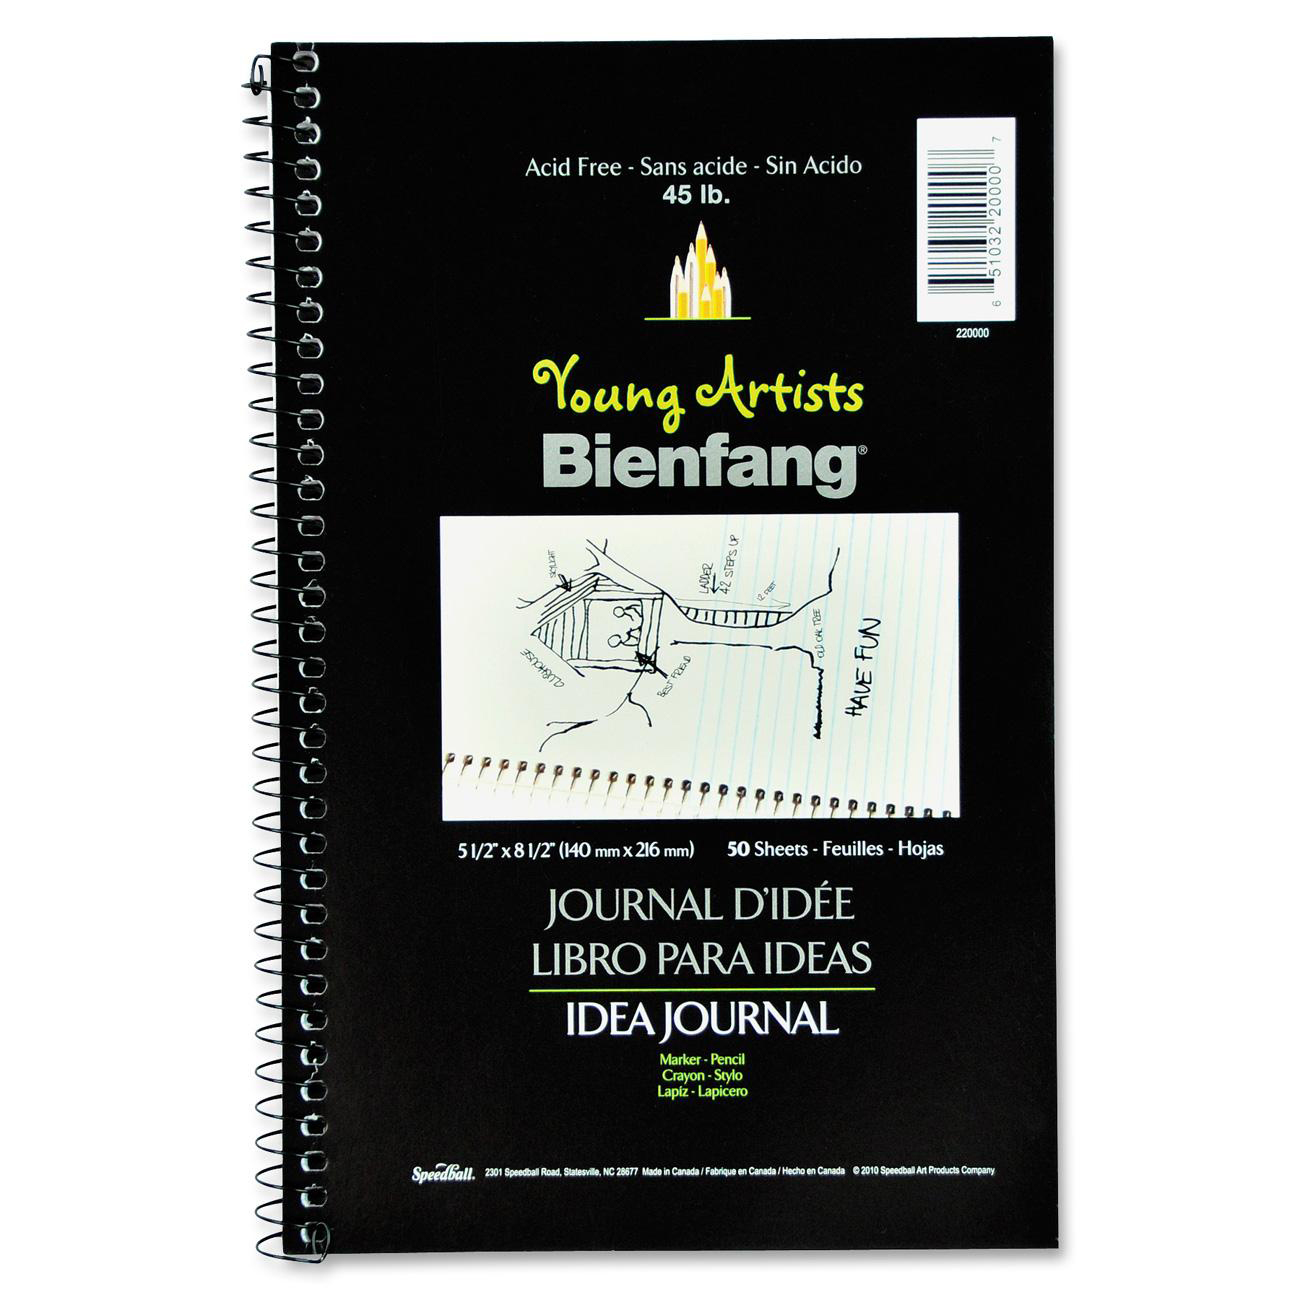 idea office supplies. Spiral Bound Book Is Designed To Let The Artist Sketch Ideas And Write Notes On Same Page. Acid Free Pages Are Half Lined Blank. Idea Office Supplies